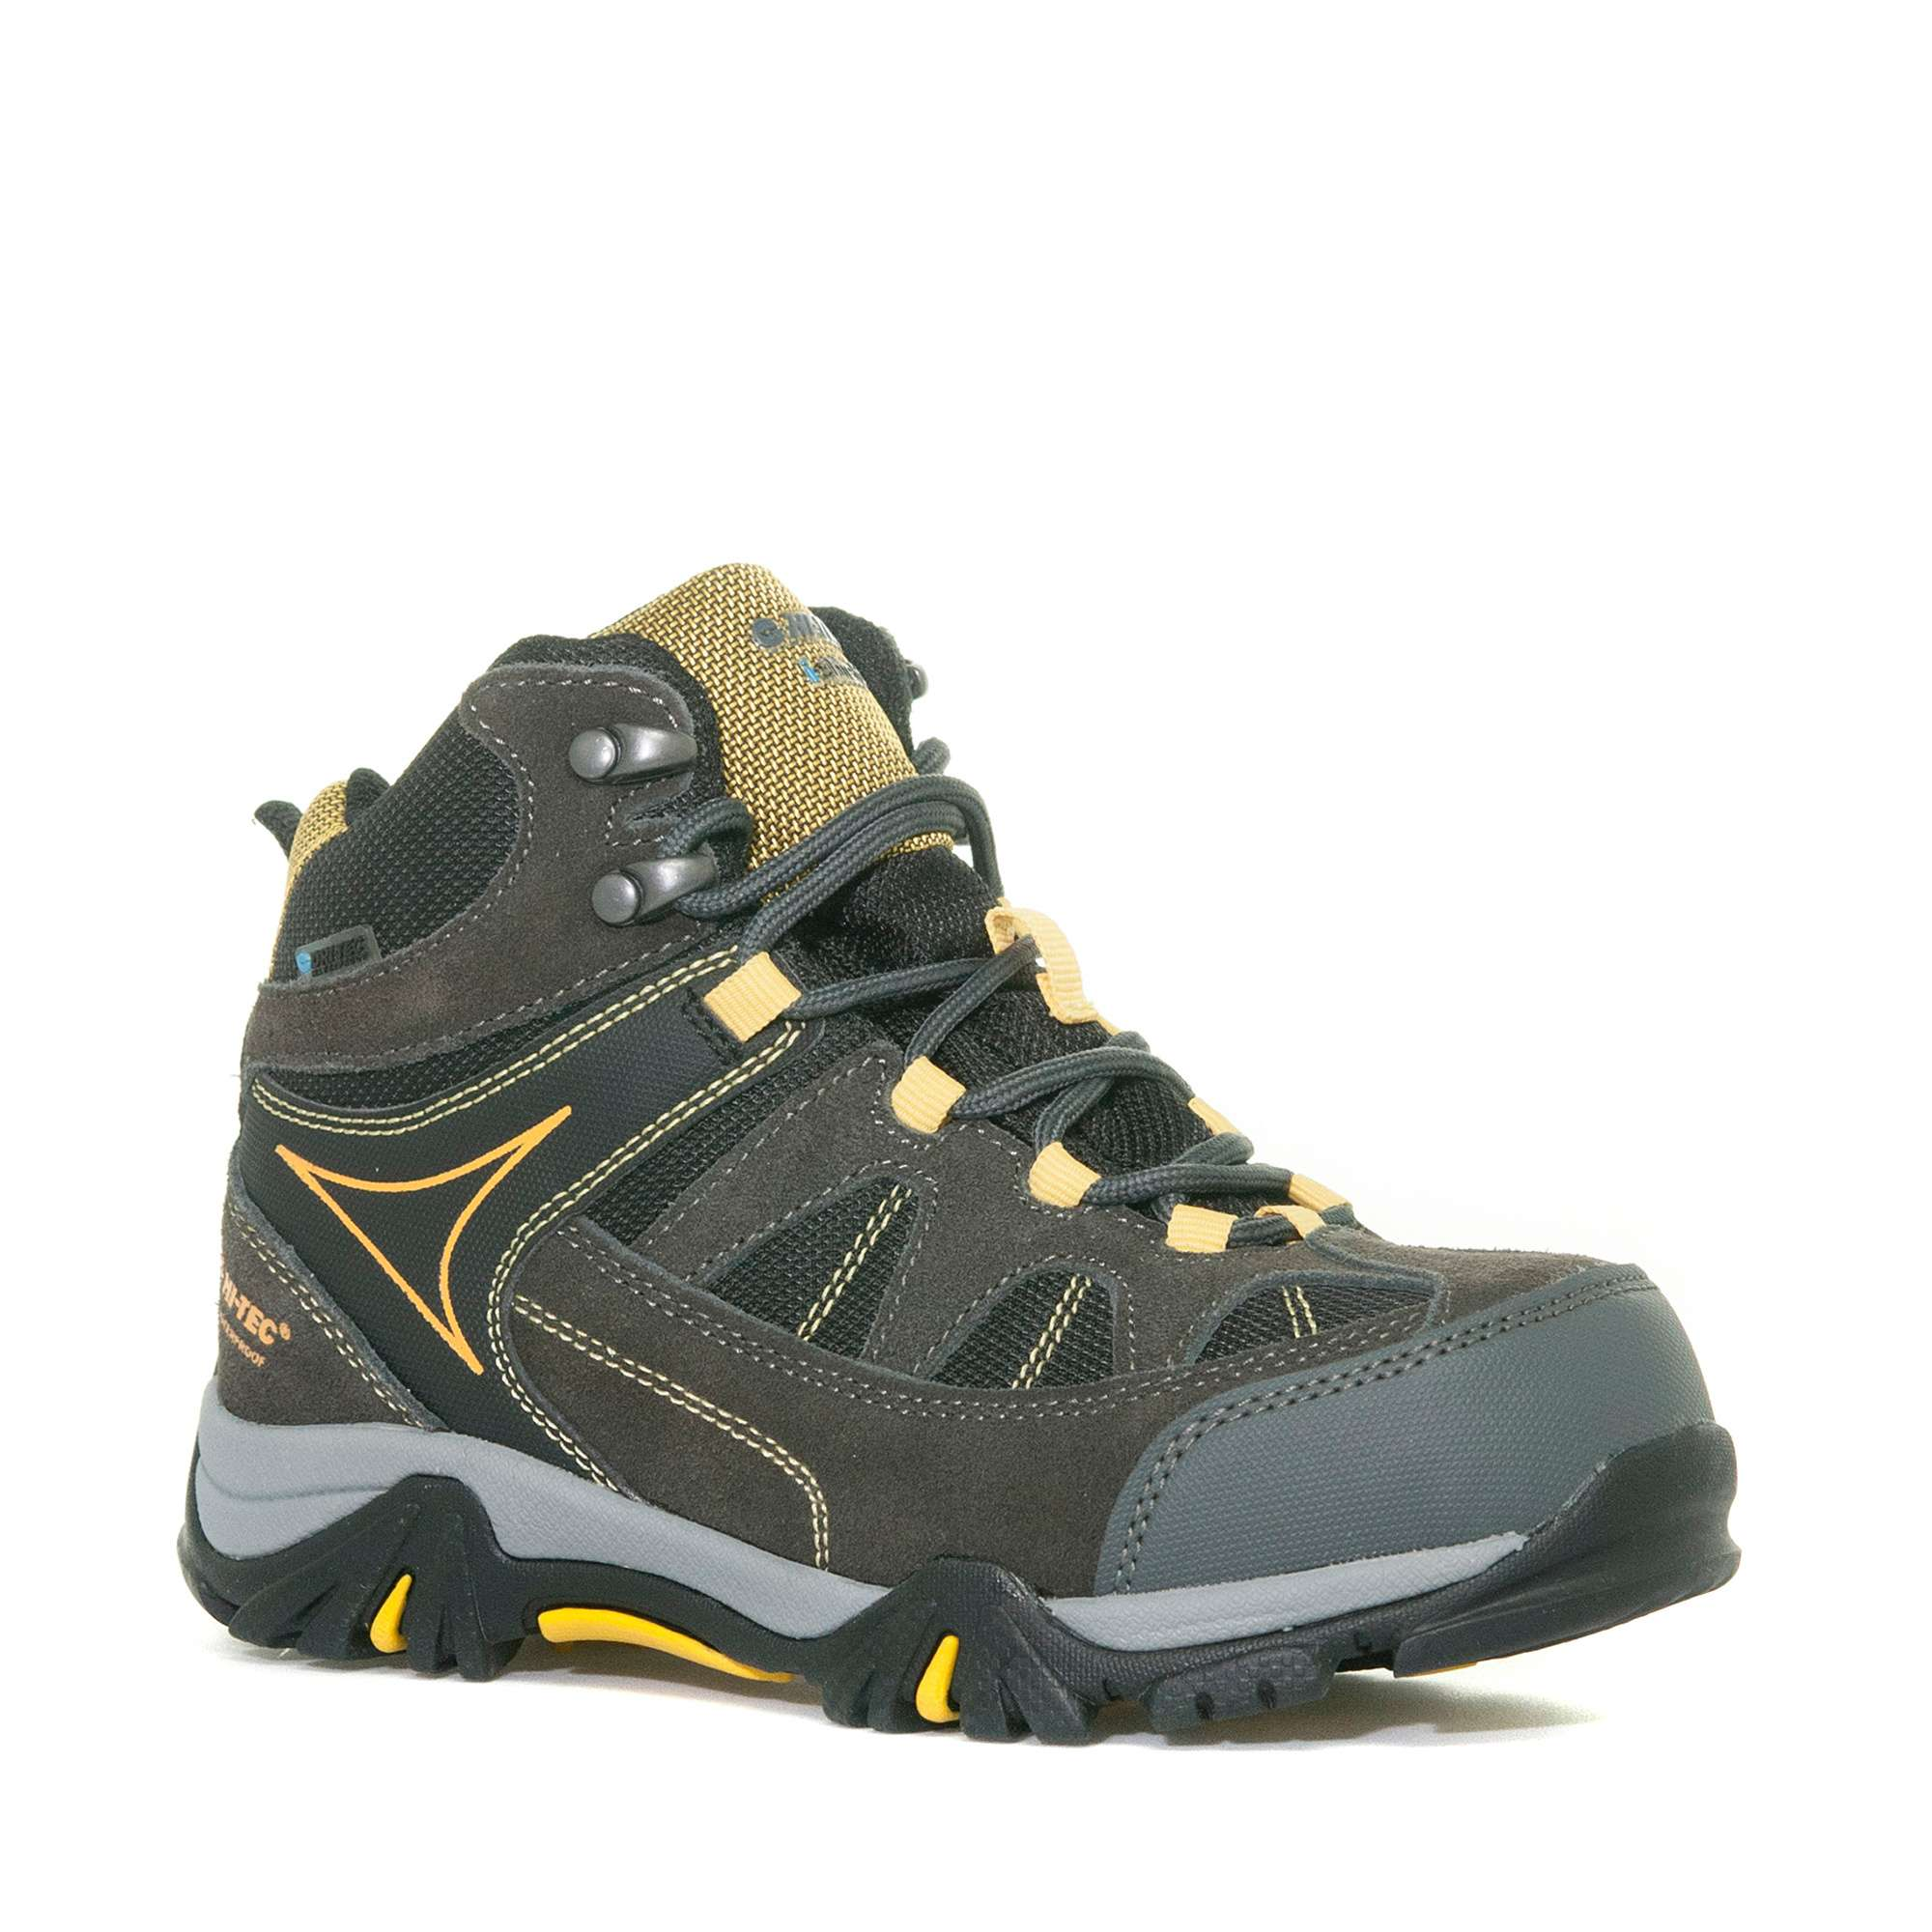 HI TEC Girls' Altitude Lite i Walking Boot